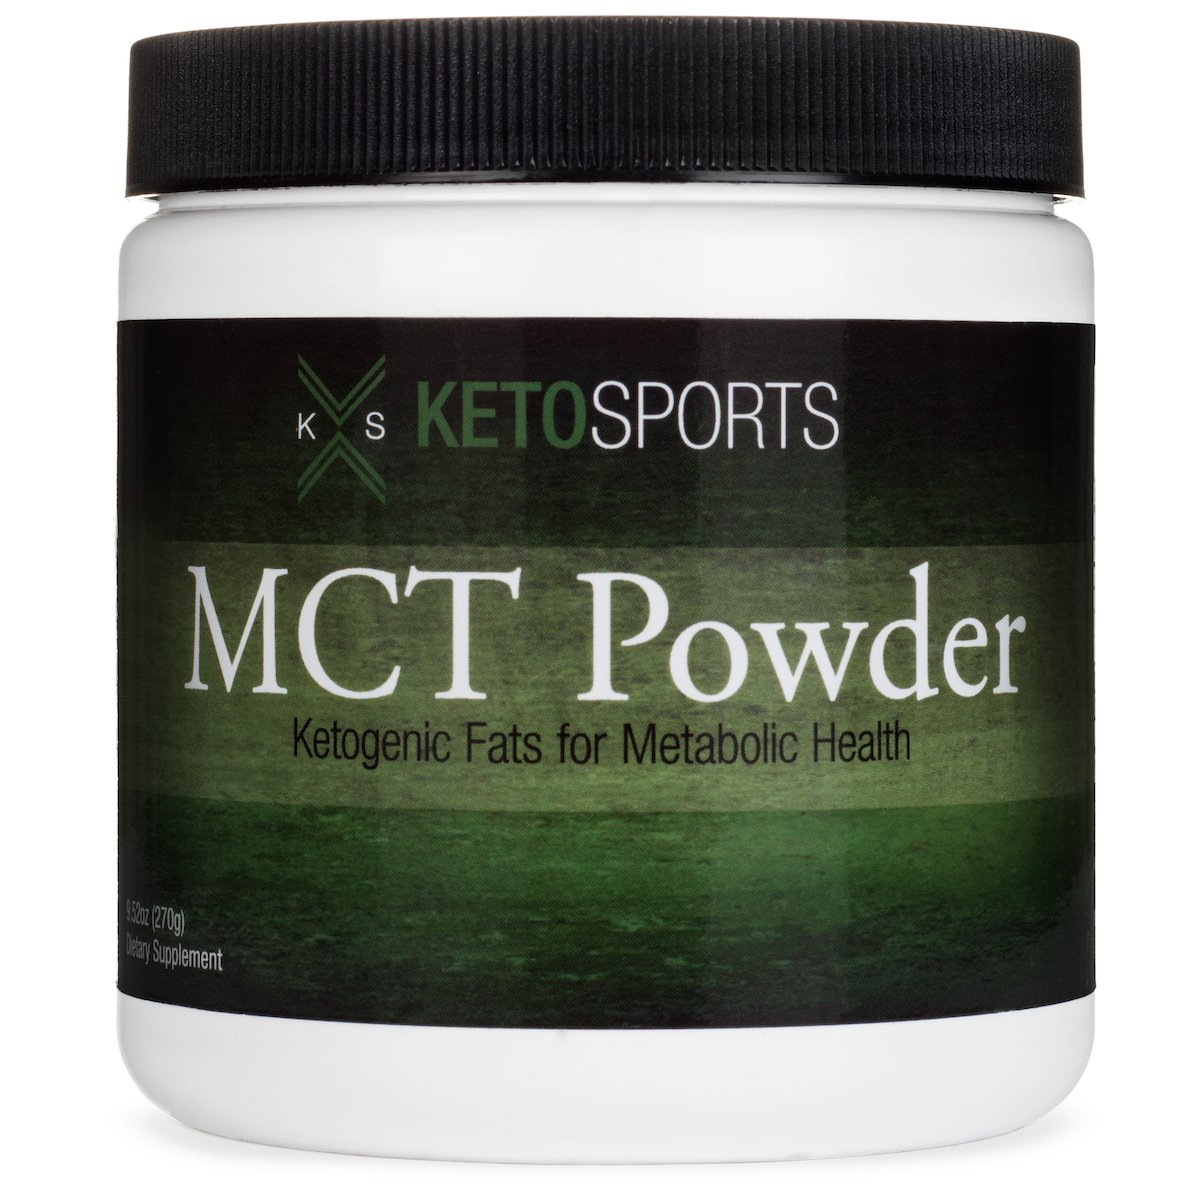 KETOSPORTS MCT POWDER, Keto Diet Pre-workot Supplement - Ketogenic Fats For Metabolic Health & Instant Energy Boost 270g by KetoSports